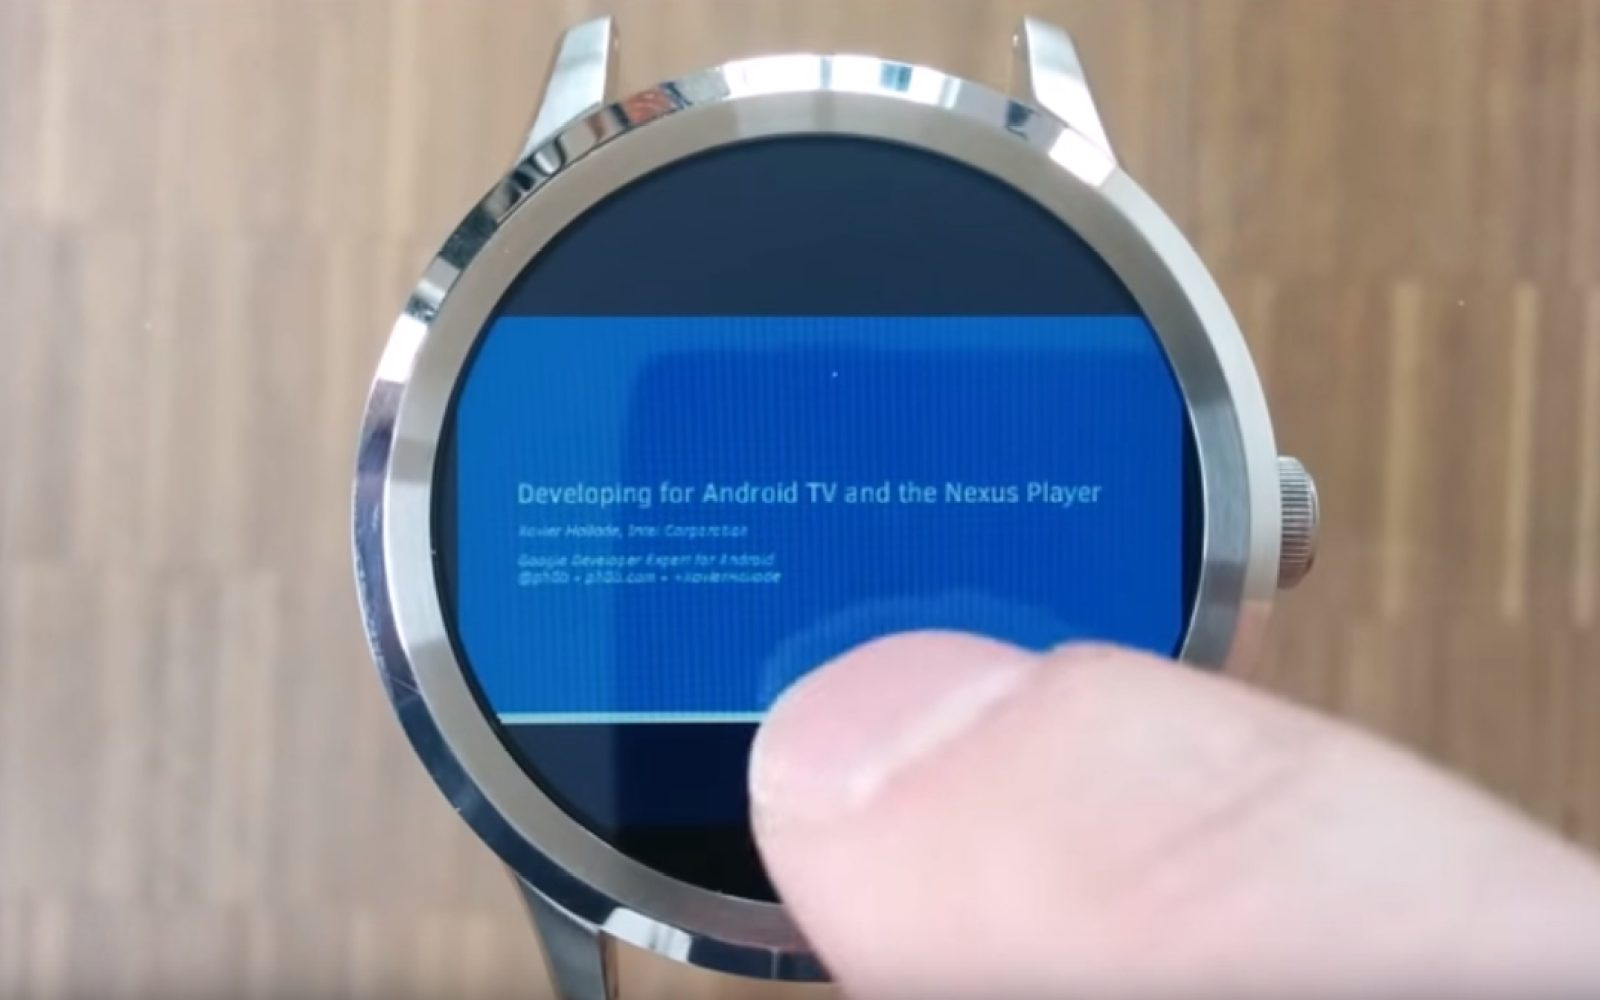 Documents for Android Wear' lets you view Google Docs and PDFs on